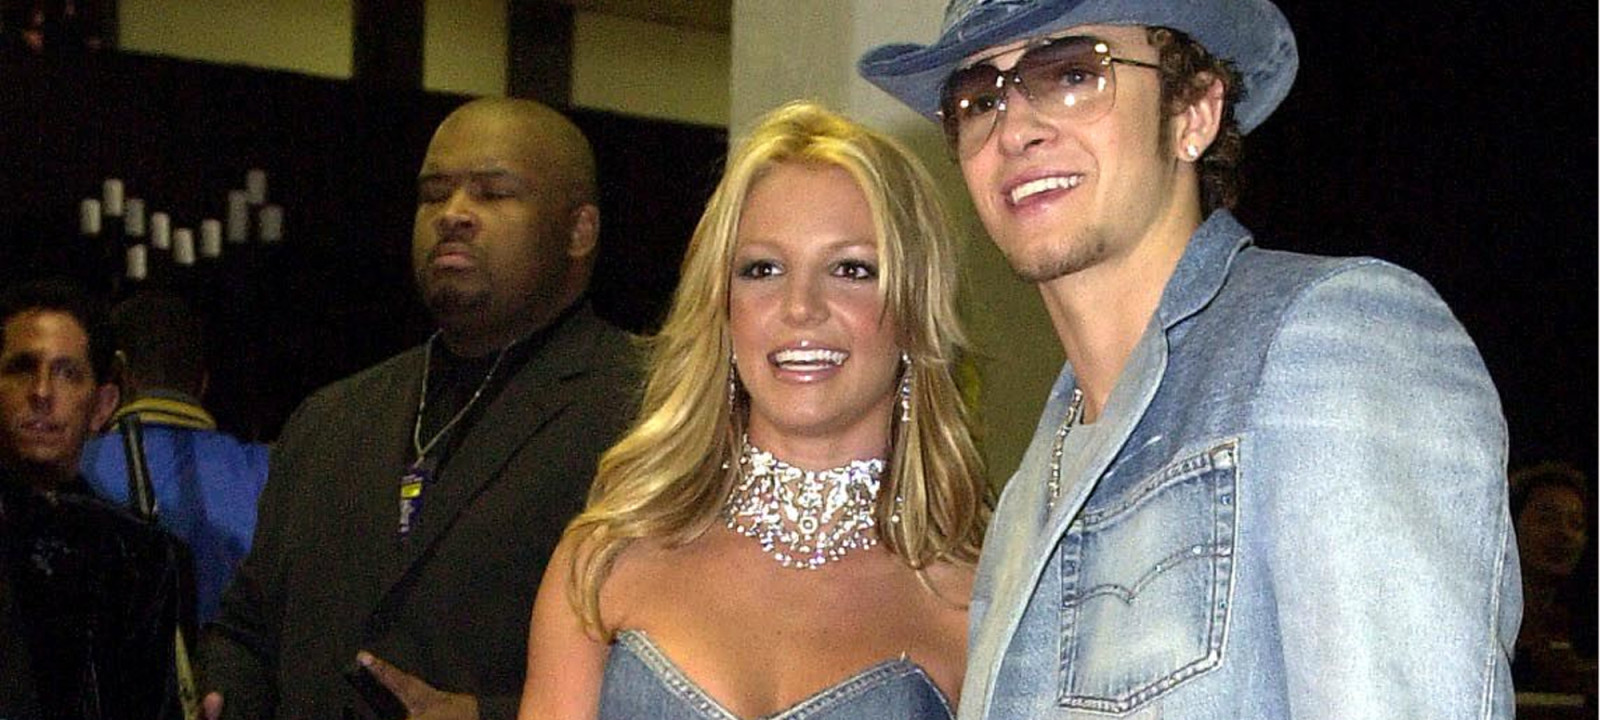 Pop star Britney Spears (l) and her boyfriend, sin